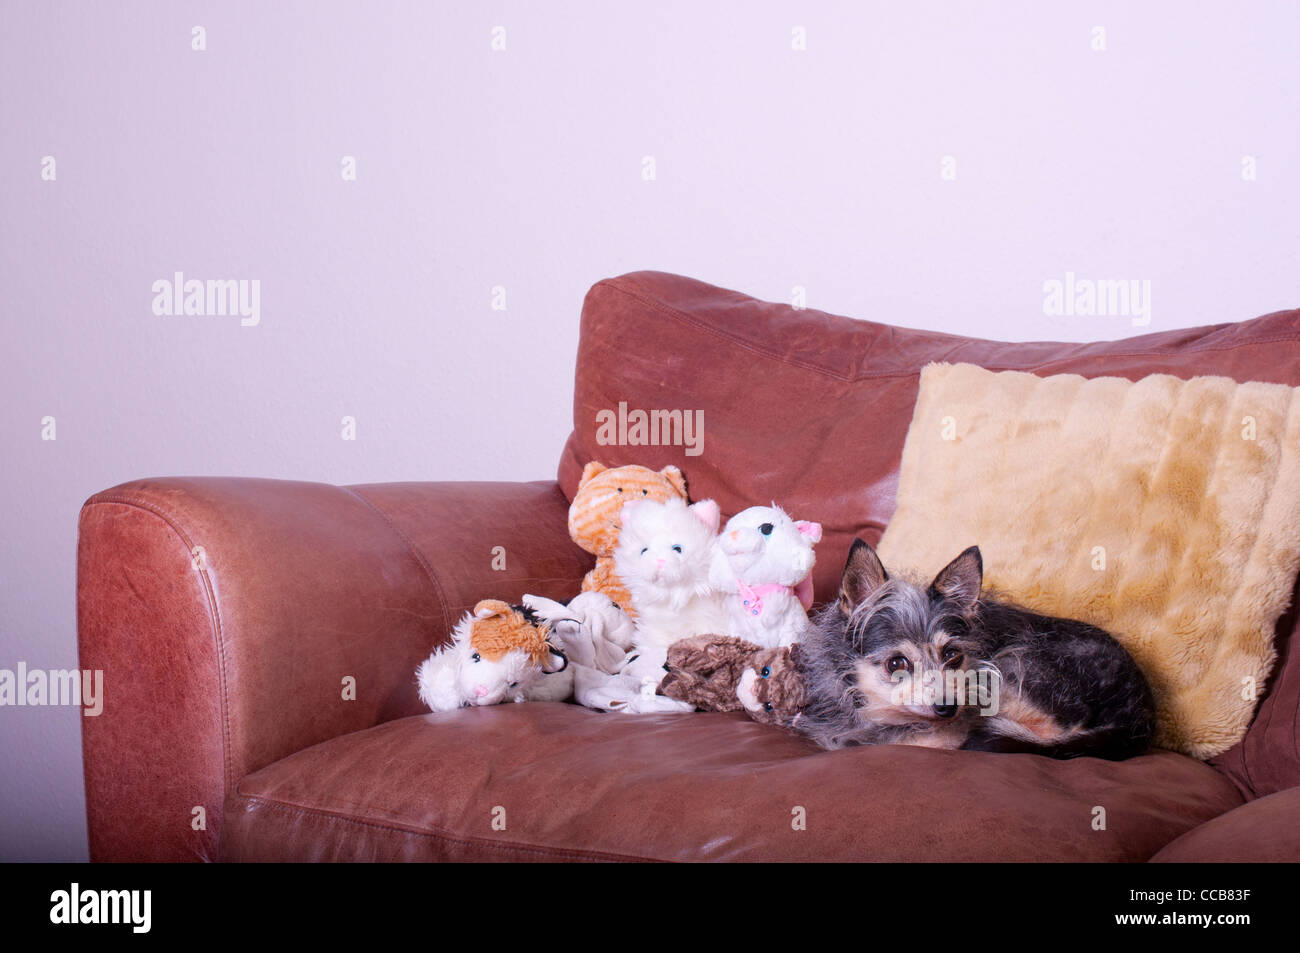 Cute small dog on sofa with soft toy cats. - Stock Image